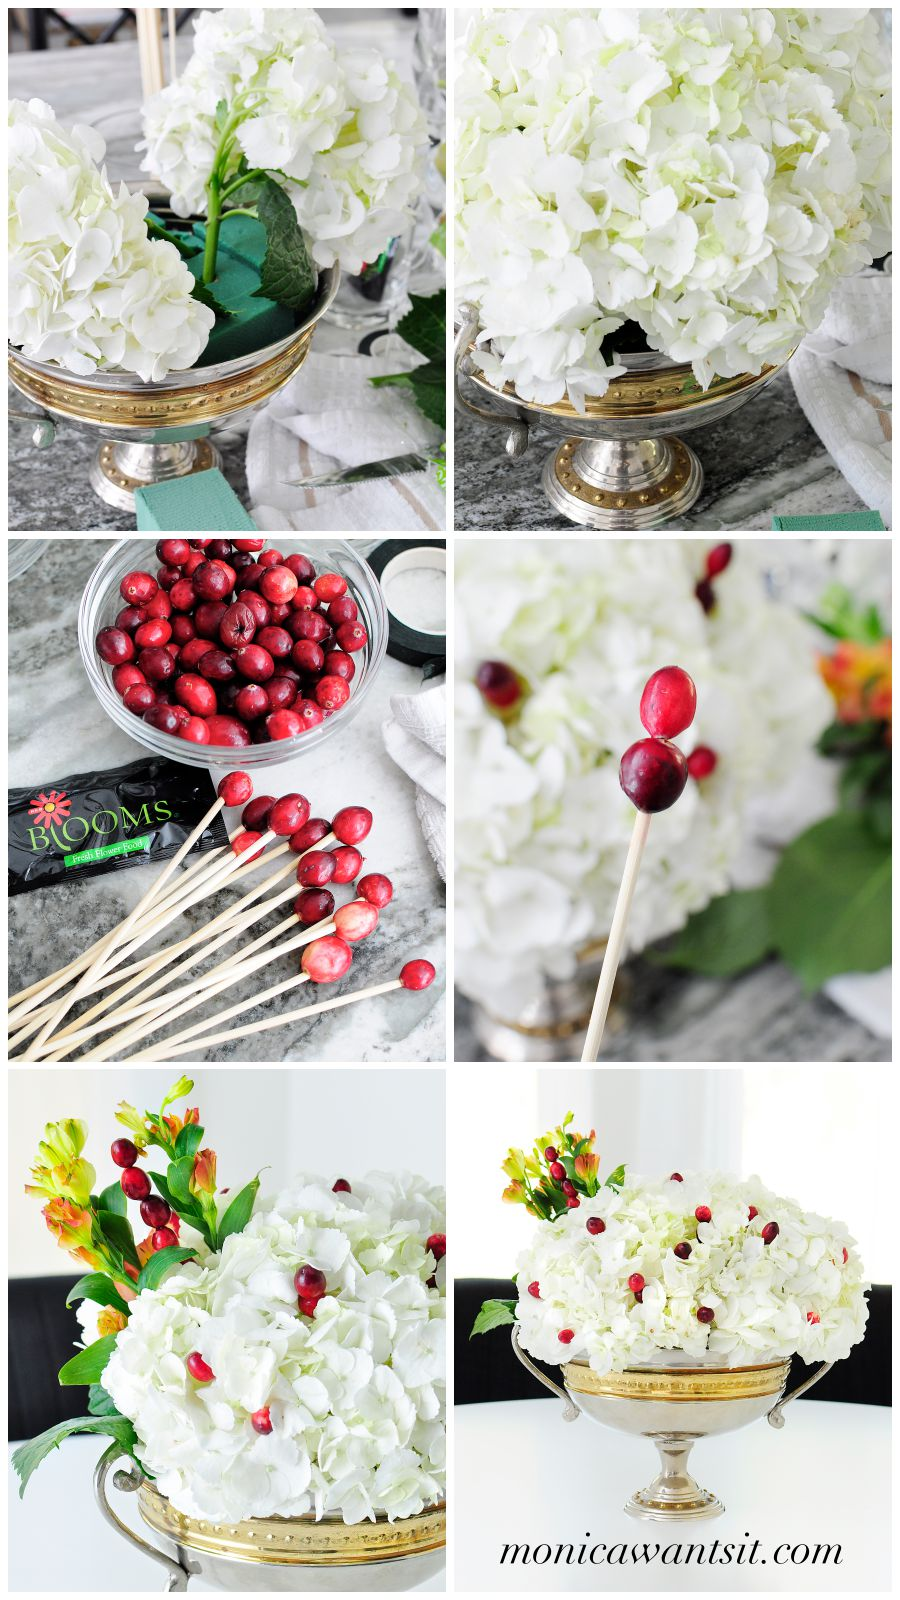 White hydrangeas paired with cranberries and greenery make a simple and elegant centerpiece for any holiday tablescape.